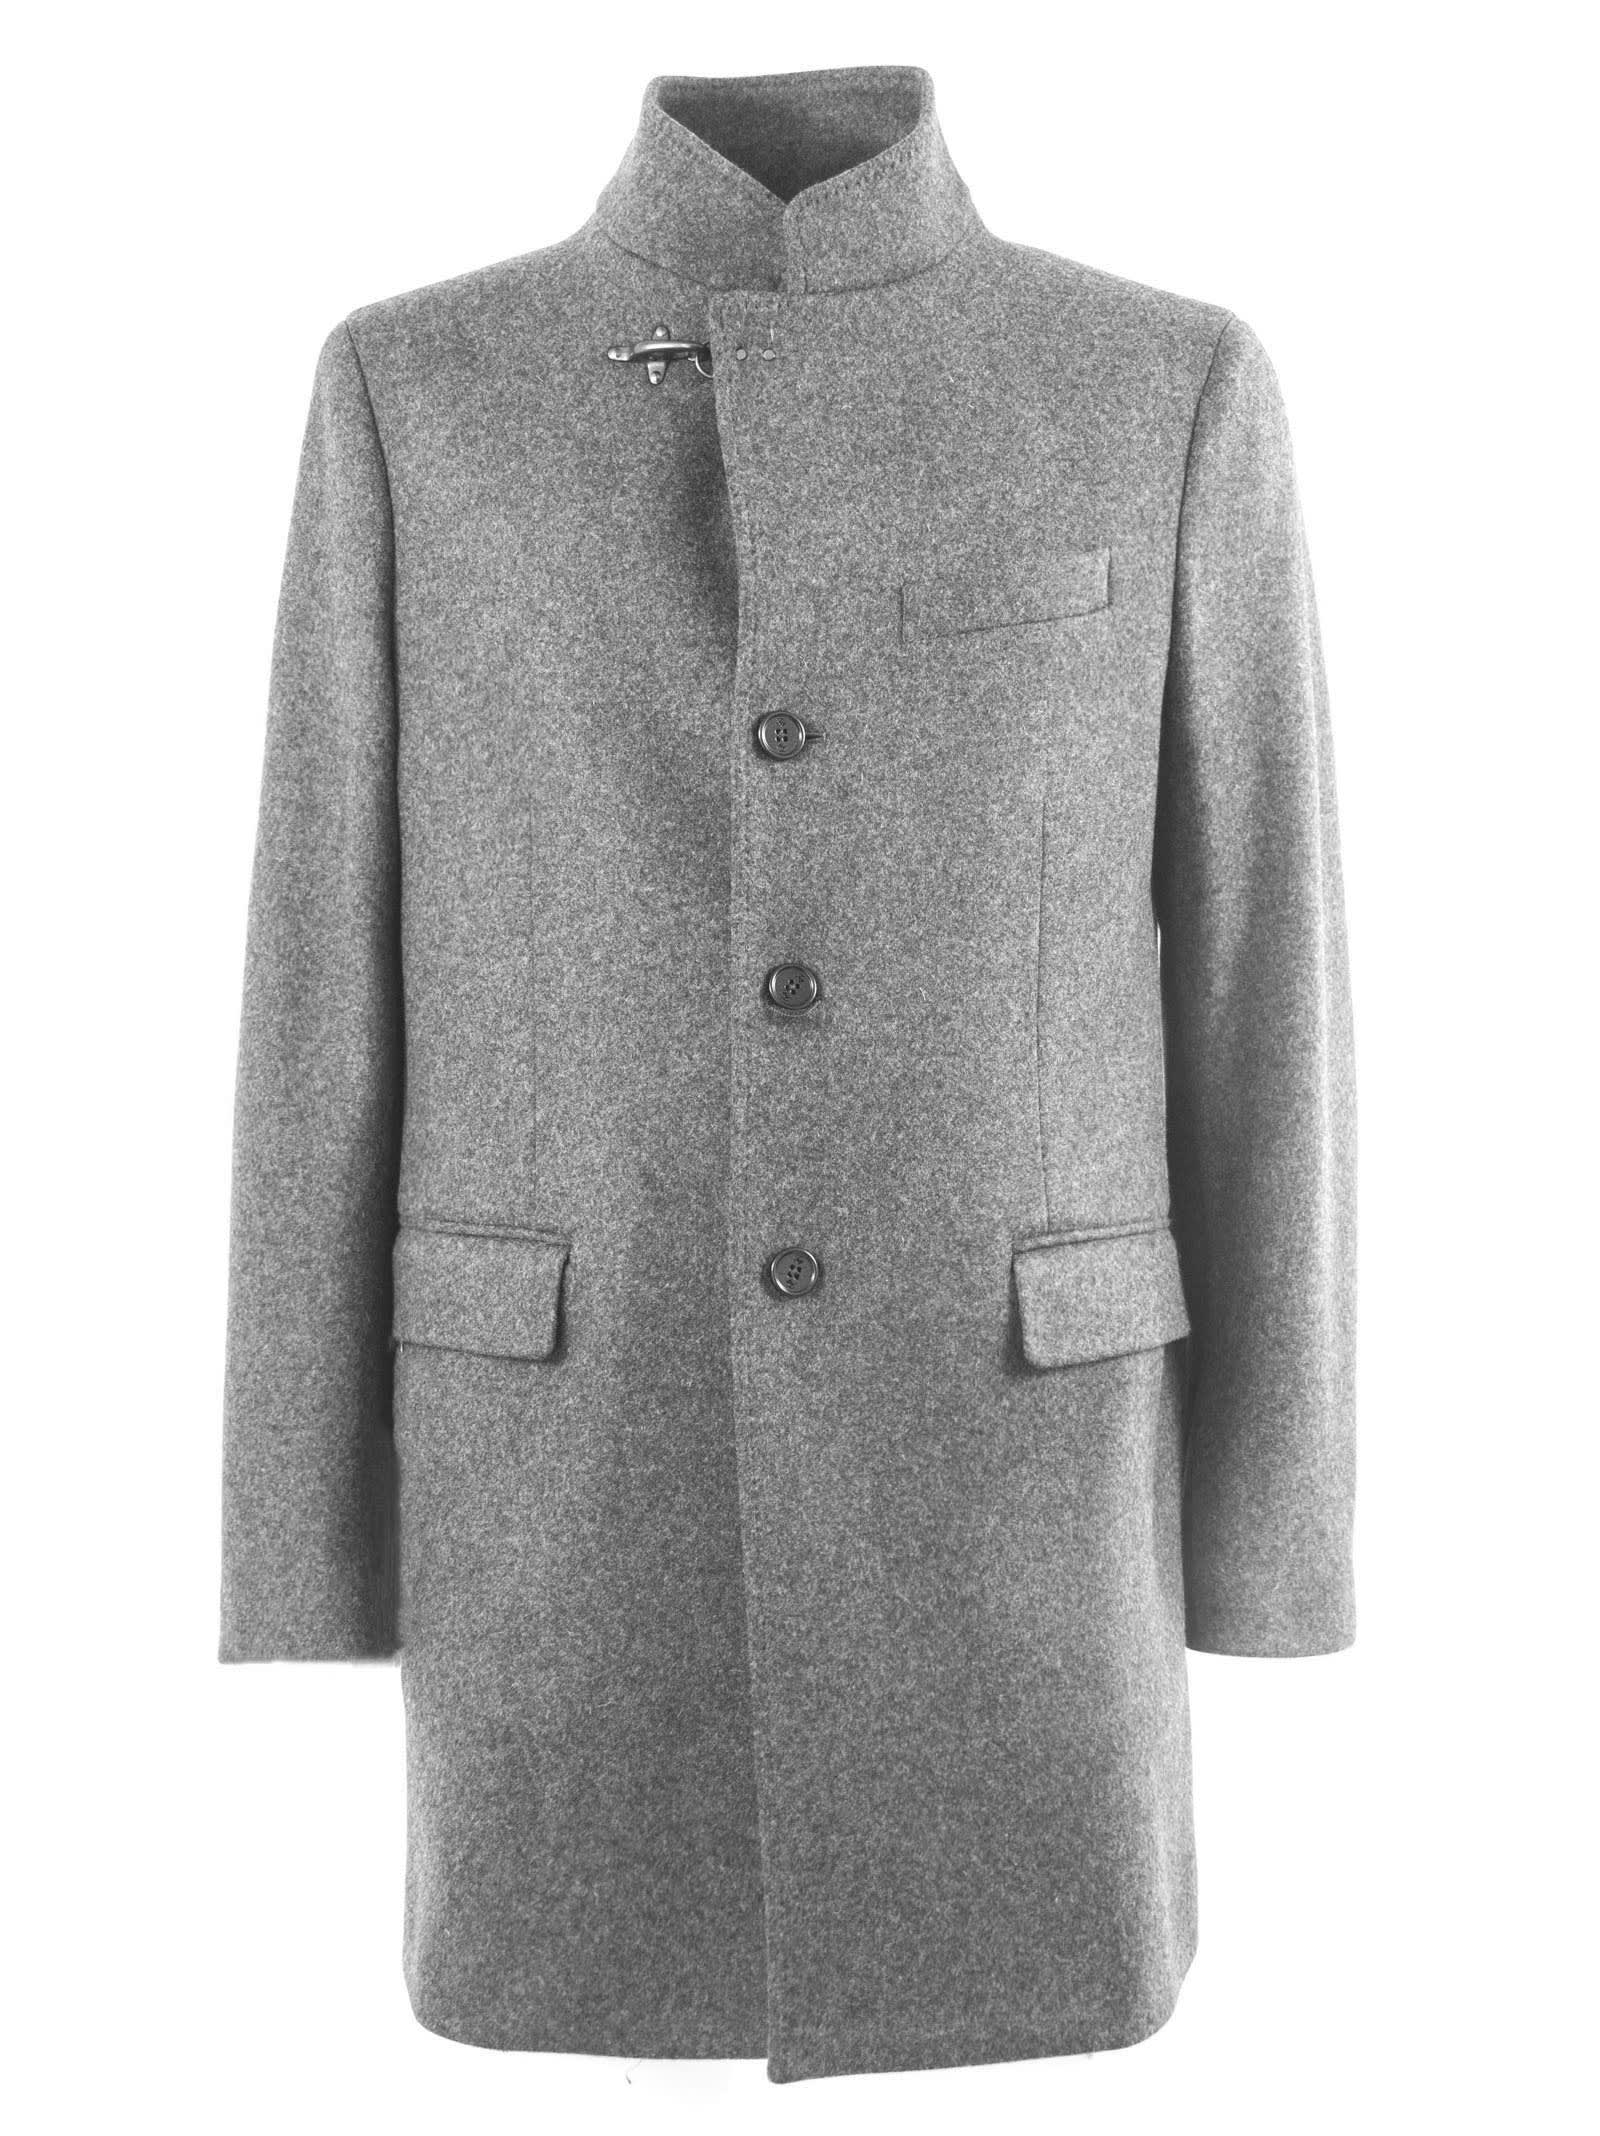 Grey Wool Button-Up Coat Featuring A Buckle Fastening, A Front Button Fastening, Long Sleeves, A Tailored Design, A Broad Welt Chest Pocket, Front Flap Pockets And A Rear Central Vent. Composition: 70% Wool, 25% Polyamide, 5% Other Fibres